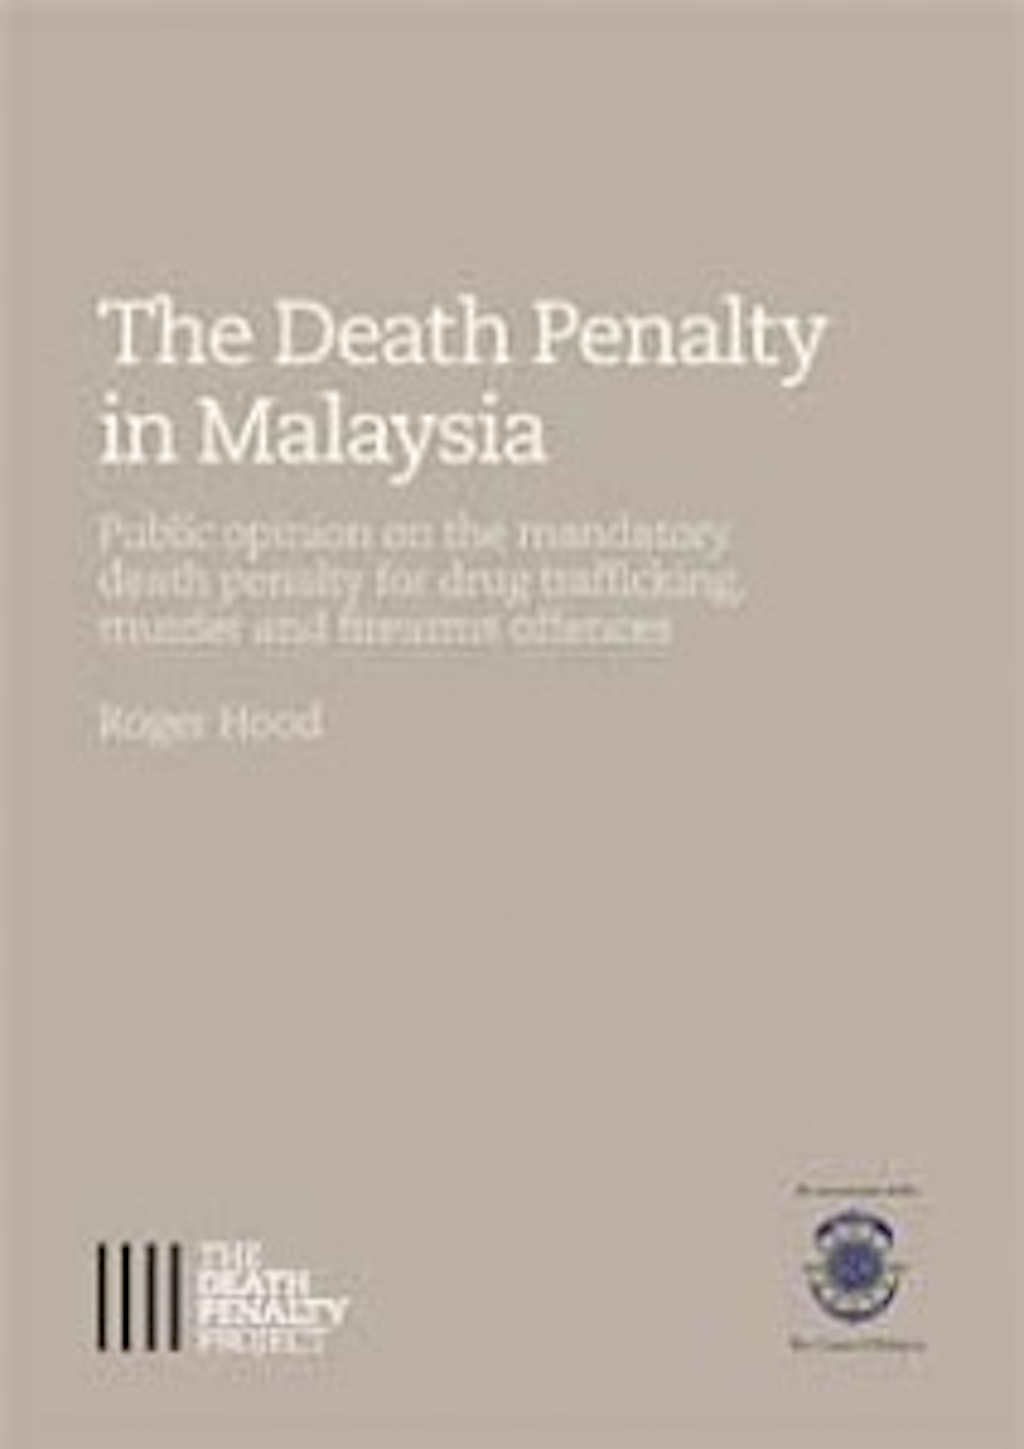 INTERNATIONAL: New Report on the Death Penalty in Malaysia